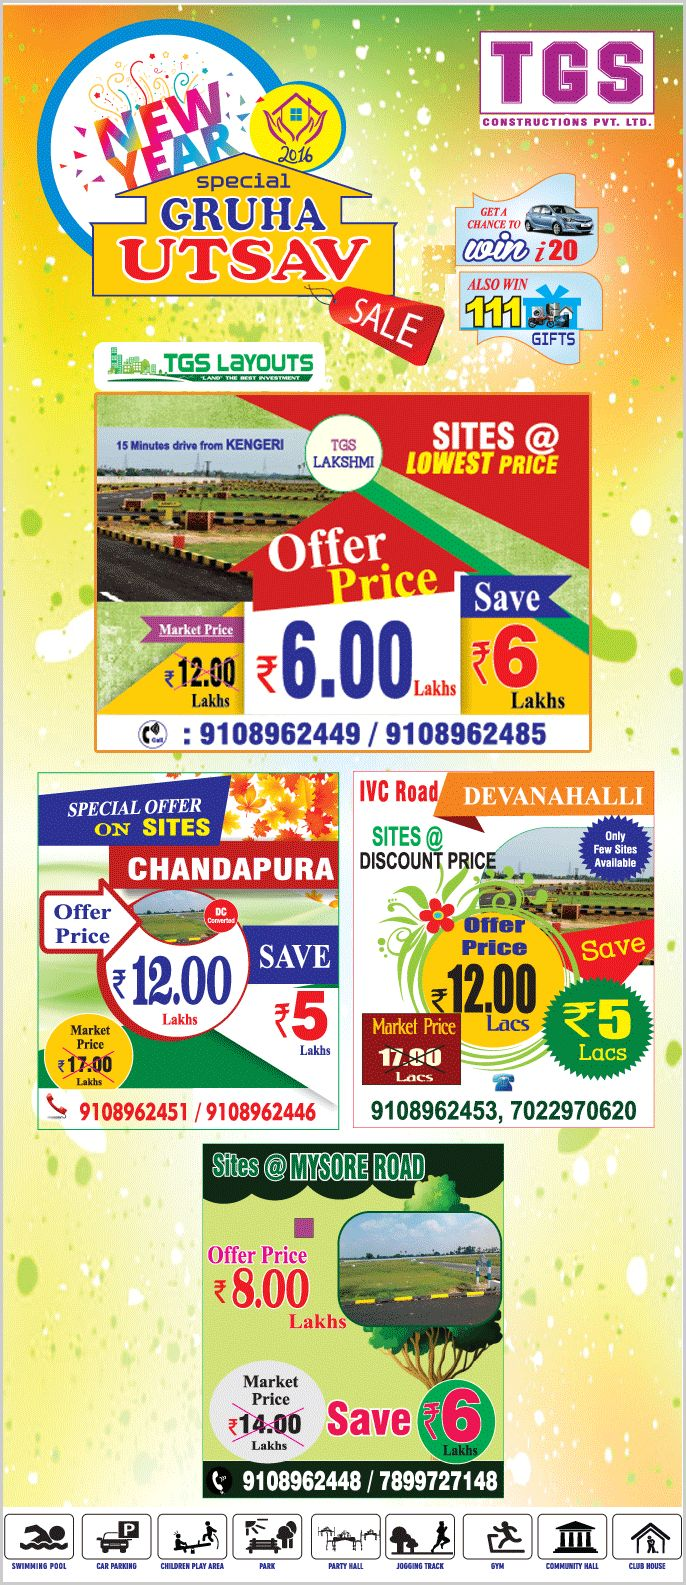 TGS Layouts announced a Gruha Utsav on the  occasion of new year that is land plots in Bangalore are at affordable price comparing to current market price in highly demanded area.